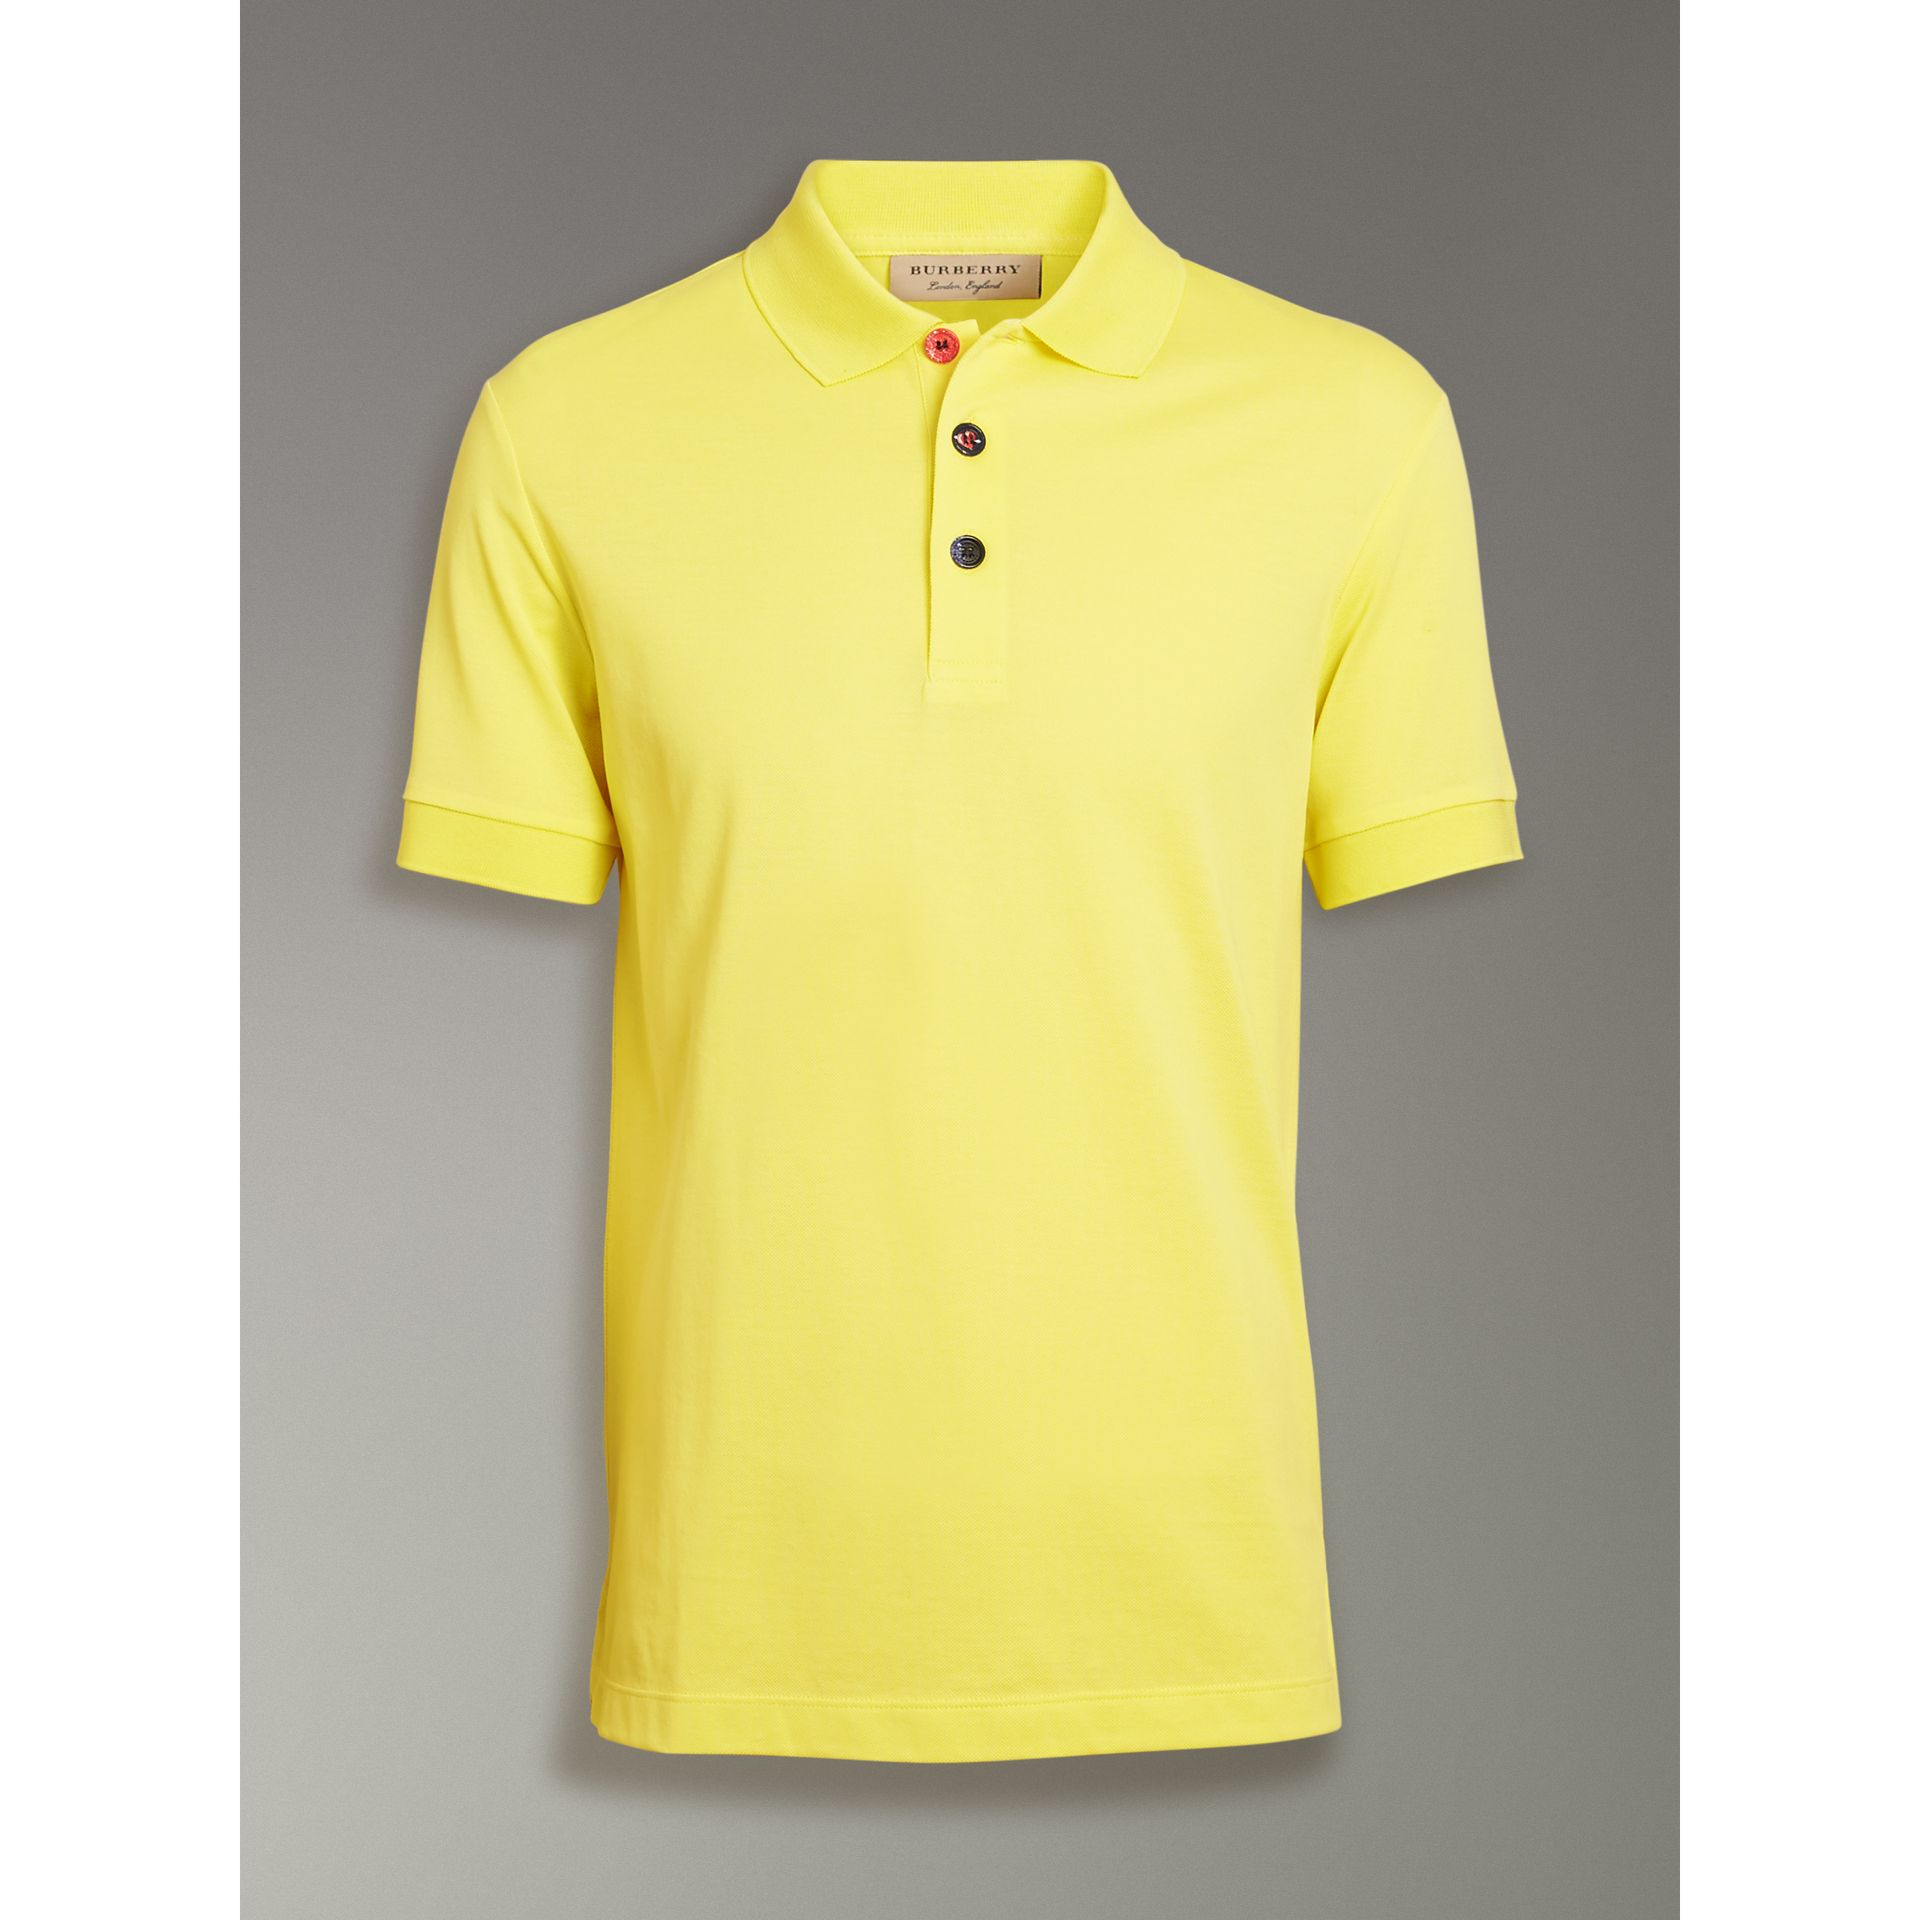 Painted Button Cotton Piqué Polo Shirt in Vibrant Lemon - Men | Burberry United Kingdom - gallery image 3